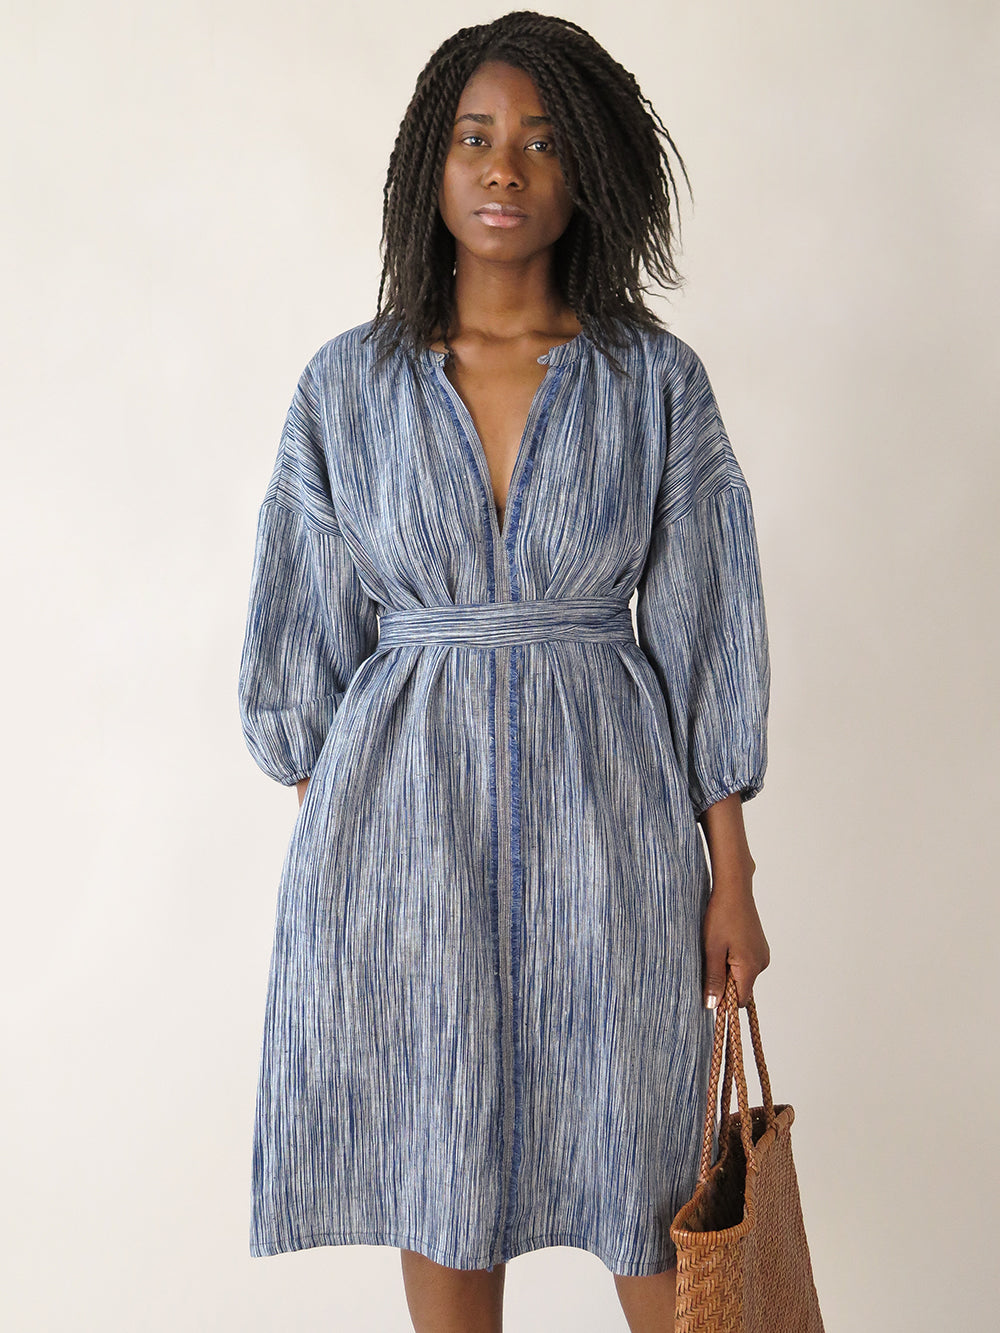 tynan dress in indigo sketch stripe